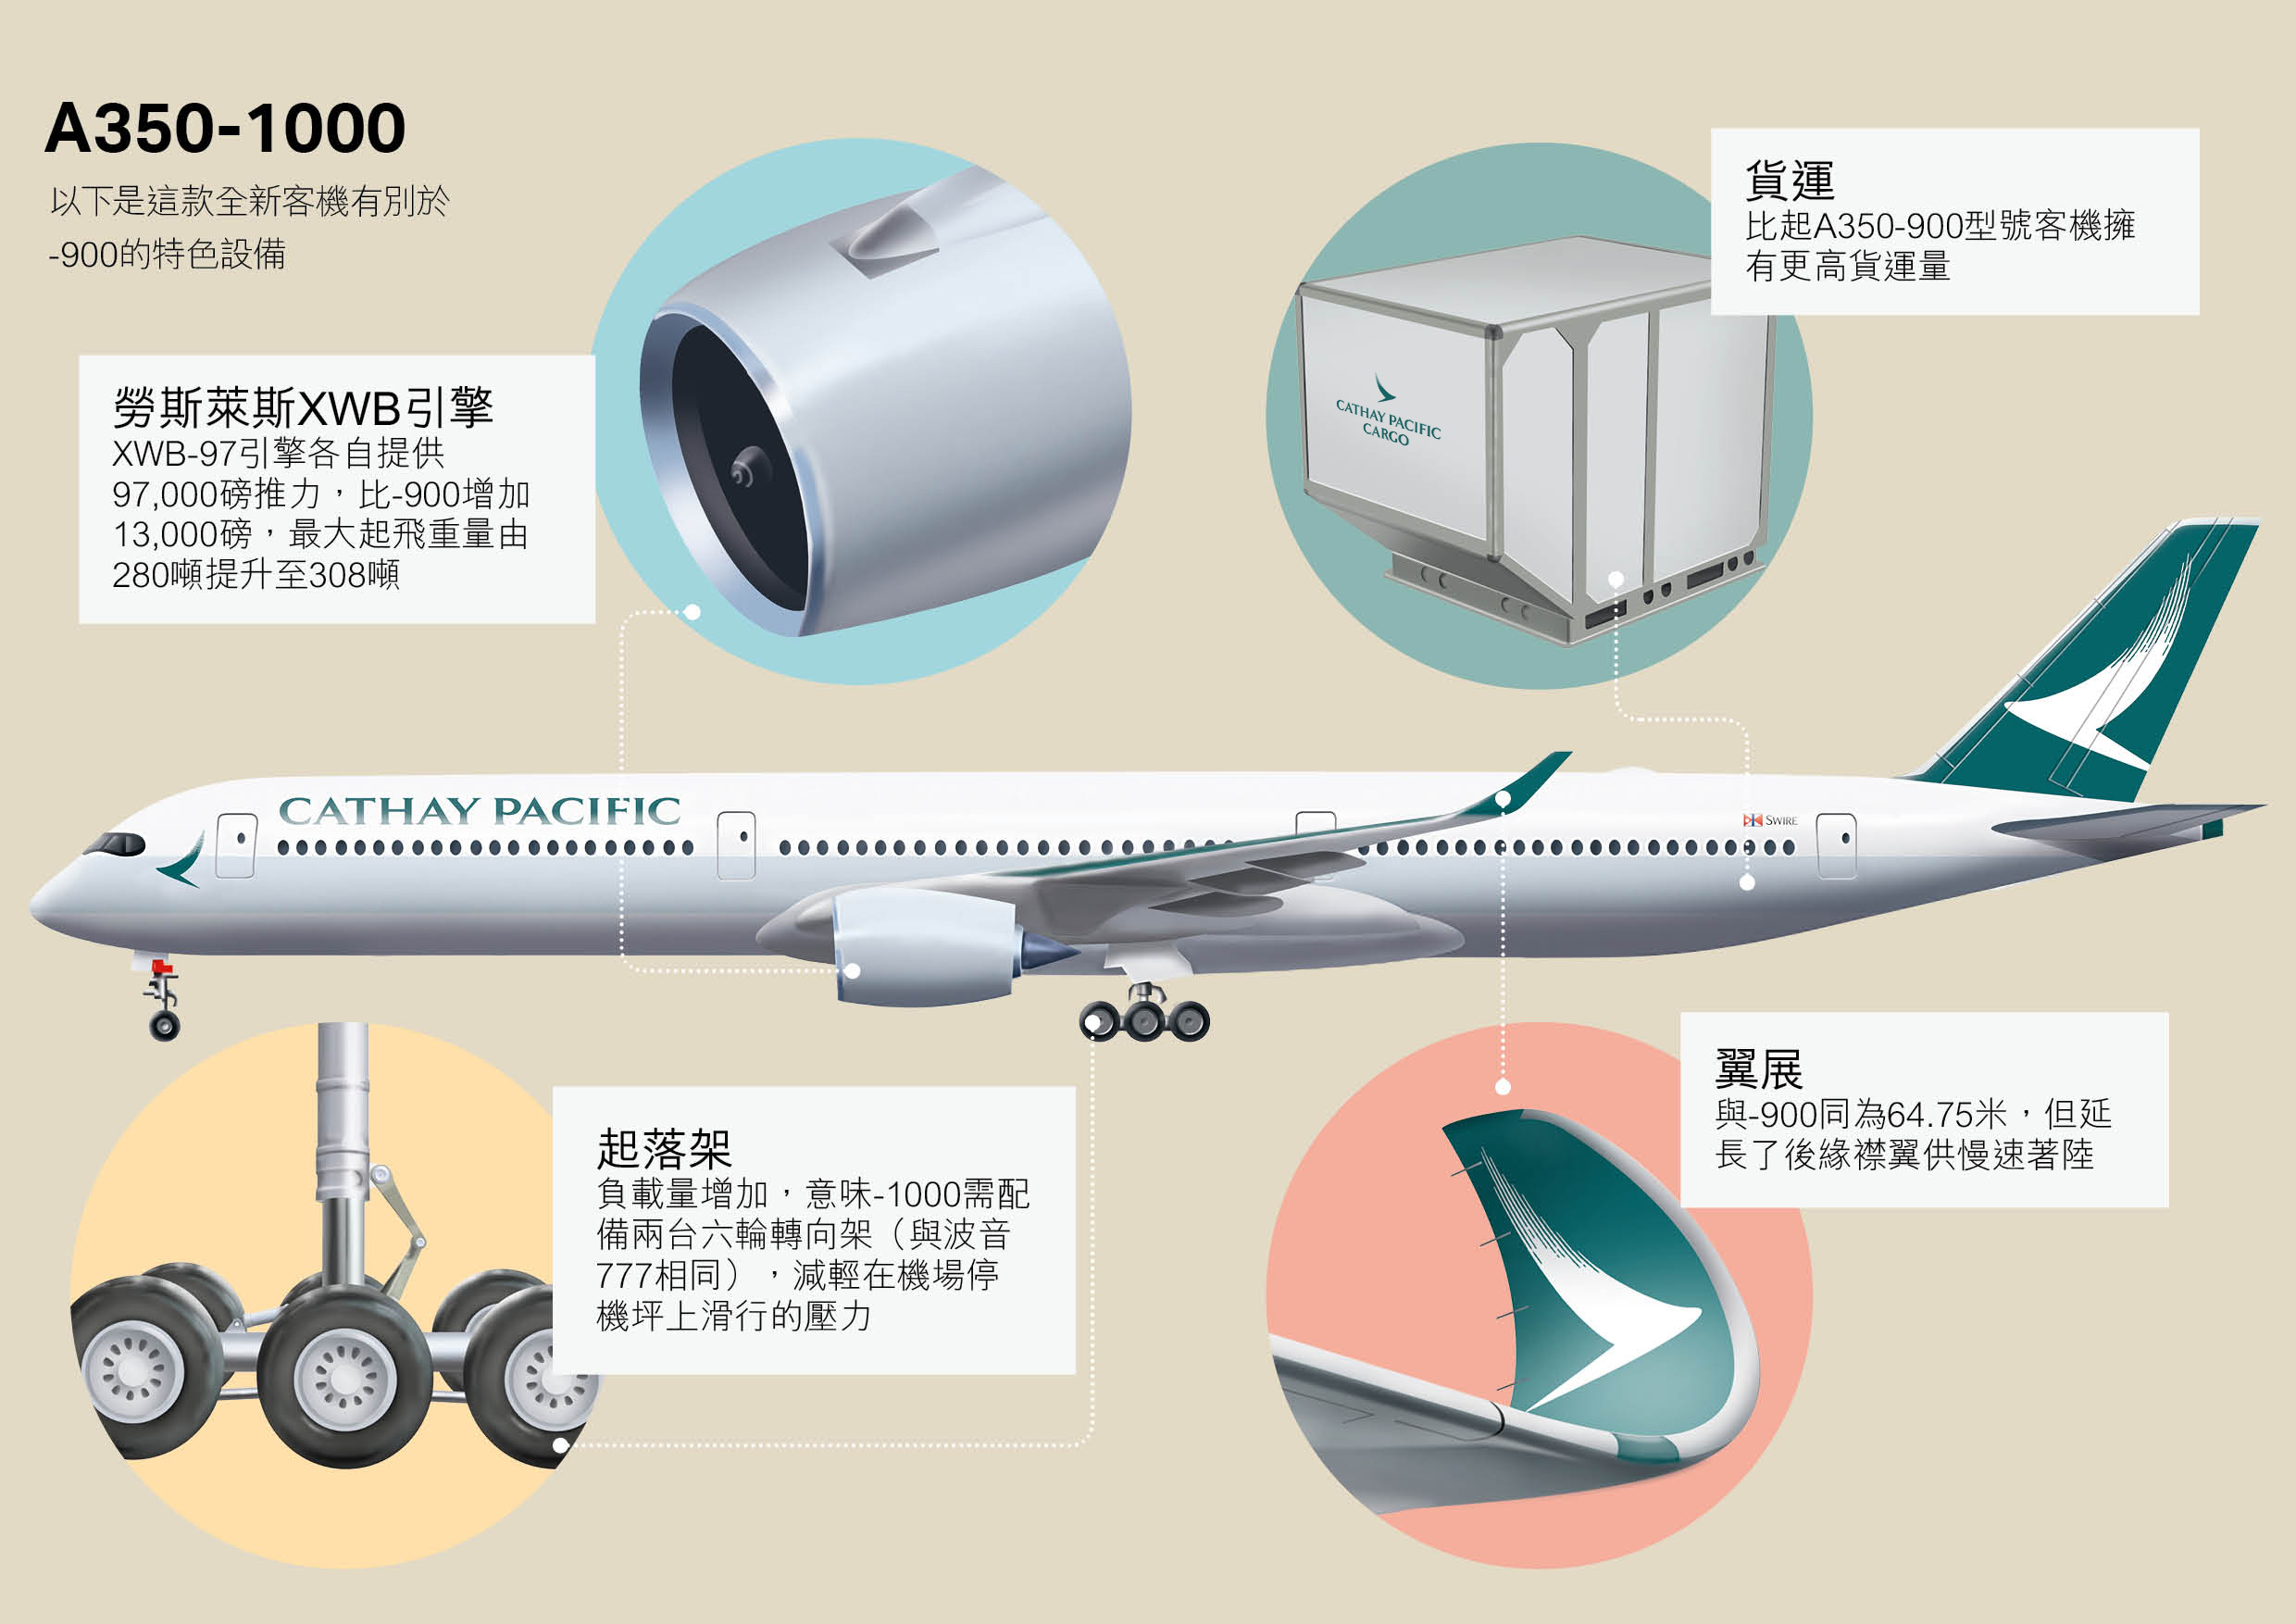 Cathay Pacific Cargo A350-1000